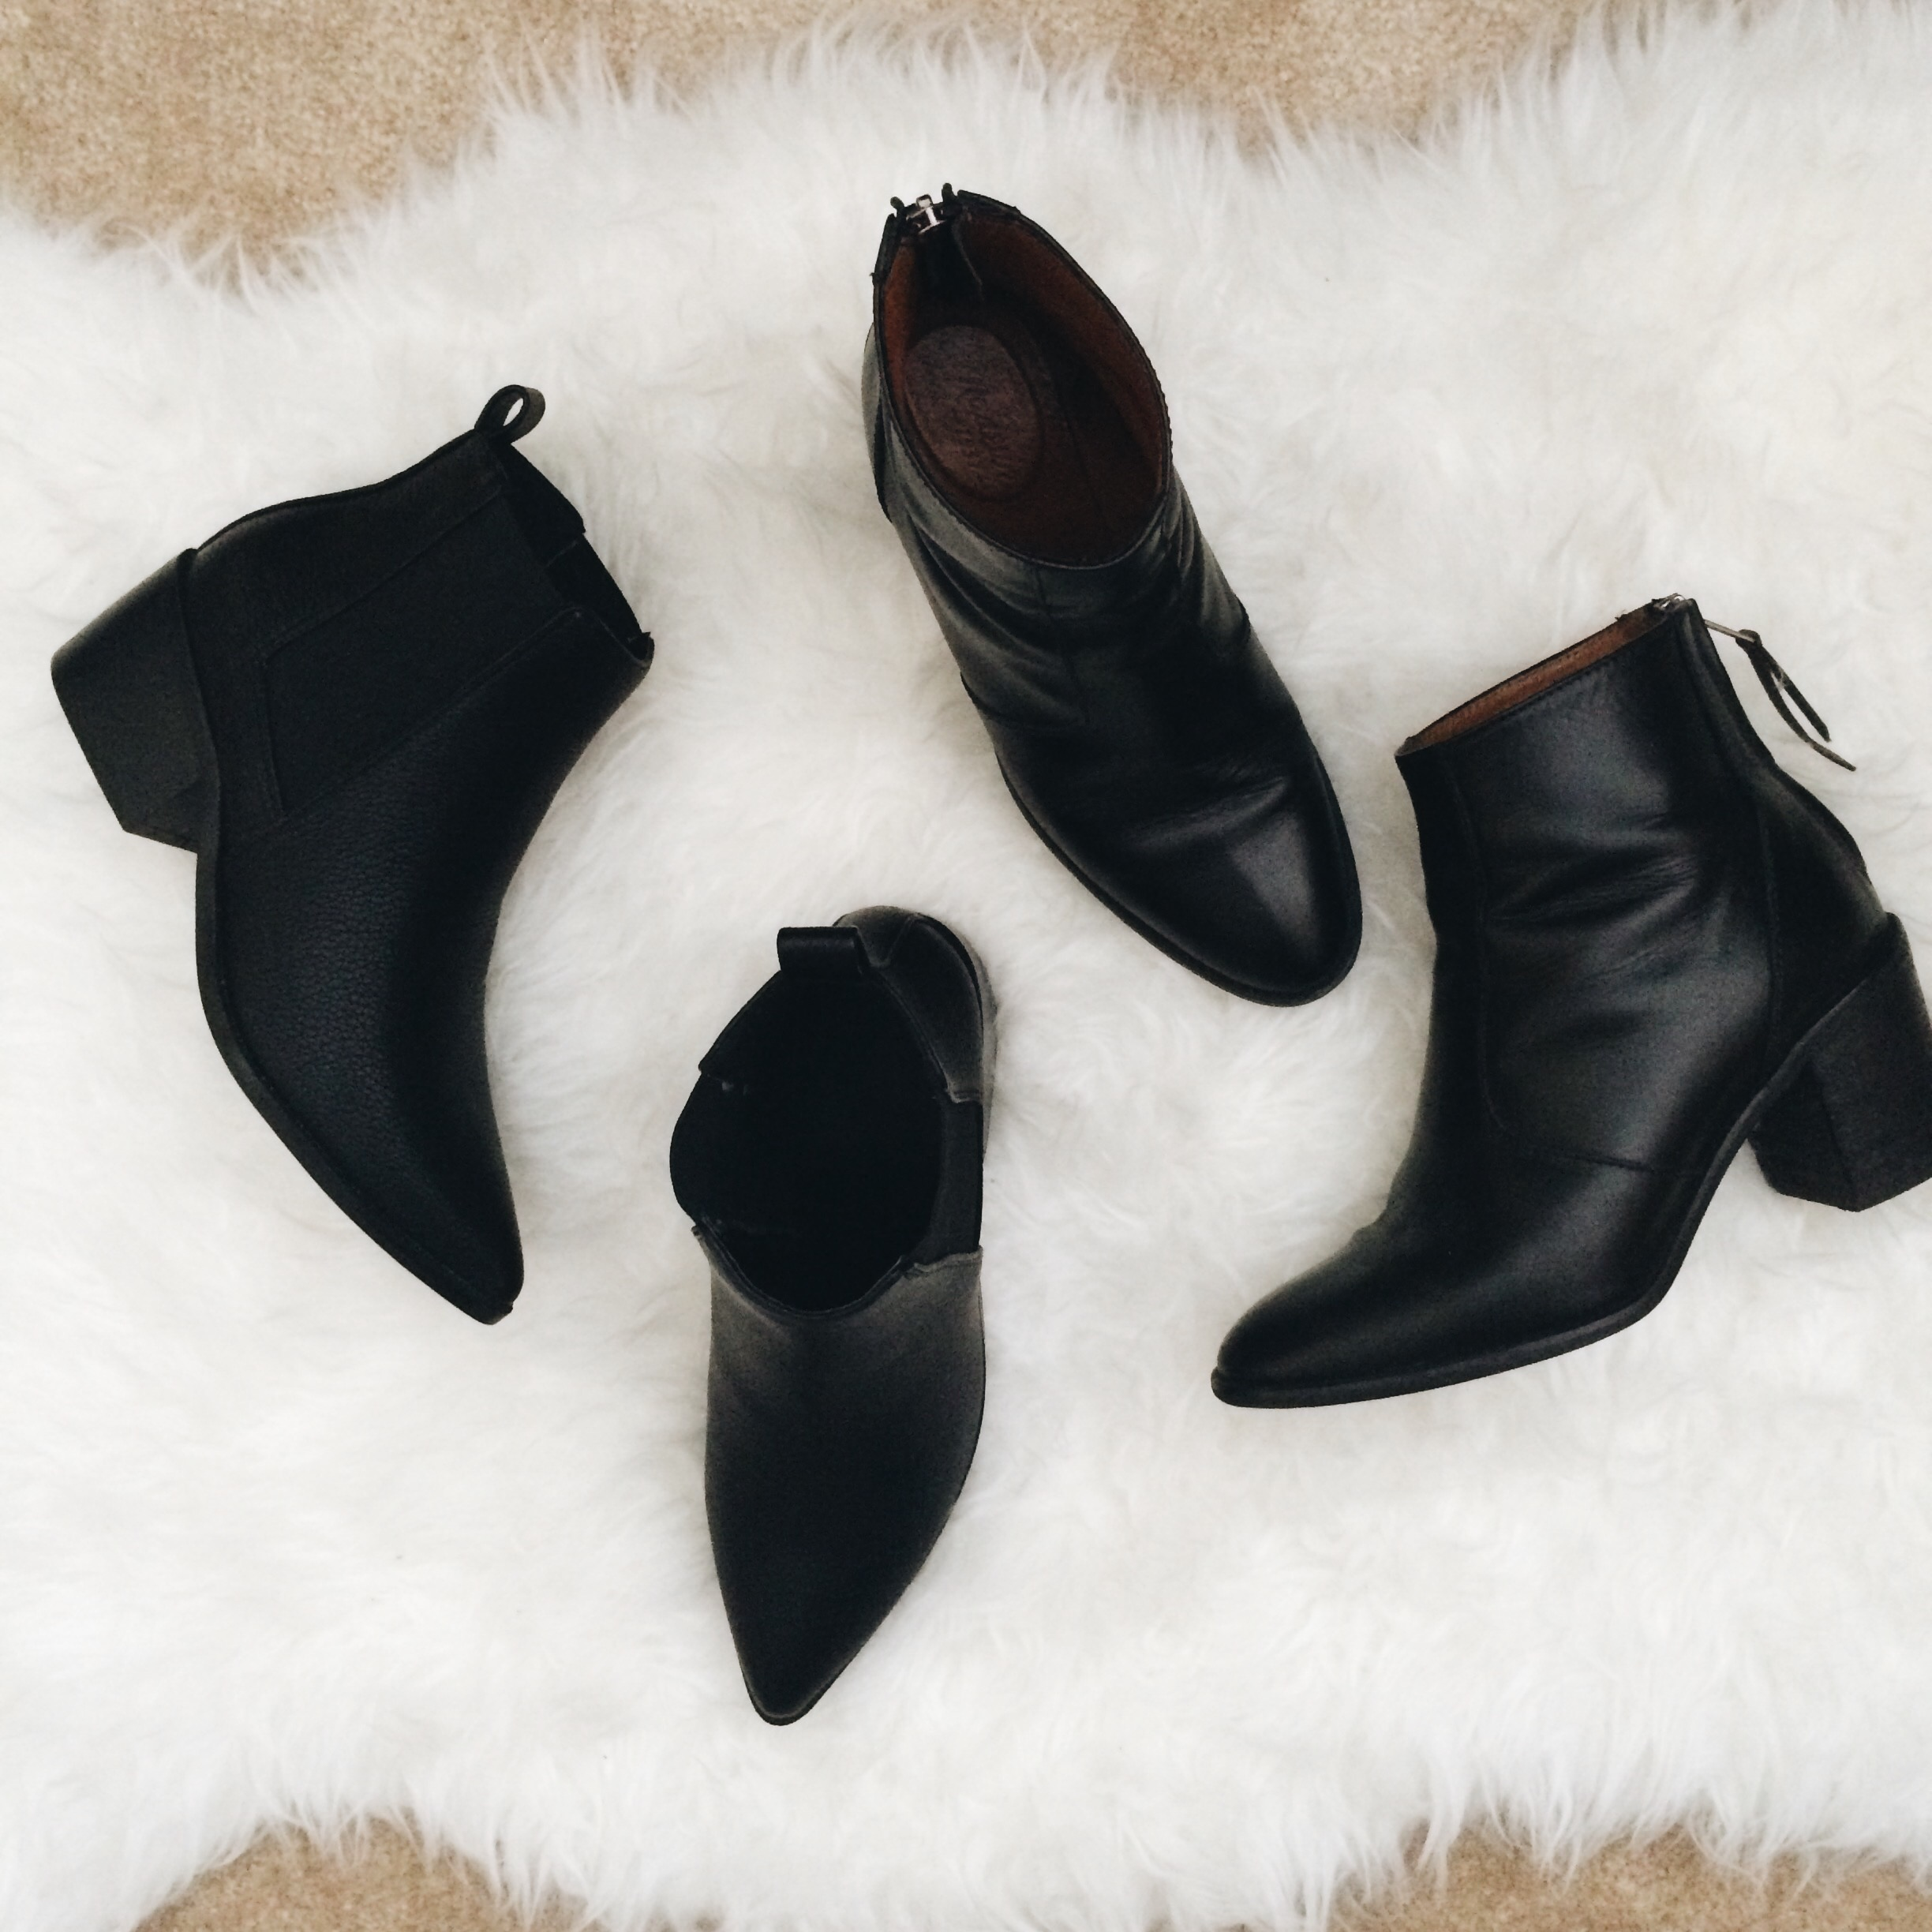 Little black boots – Everything ShyuSized